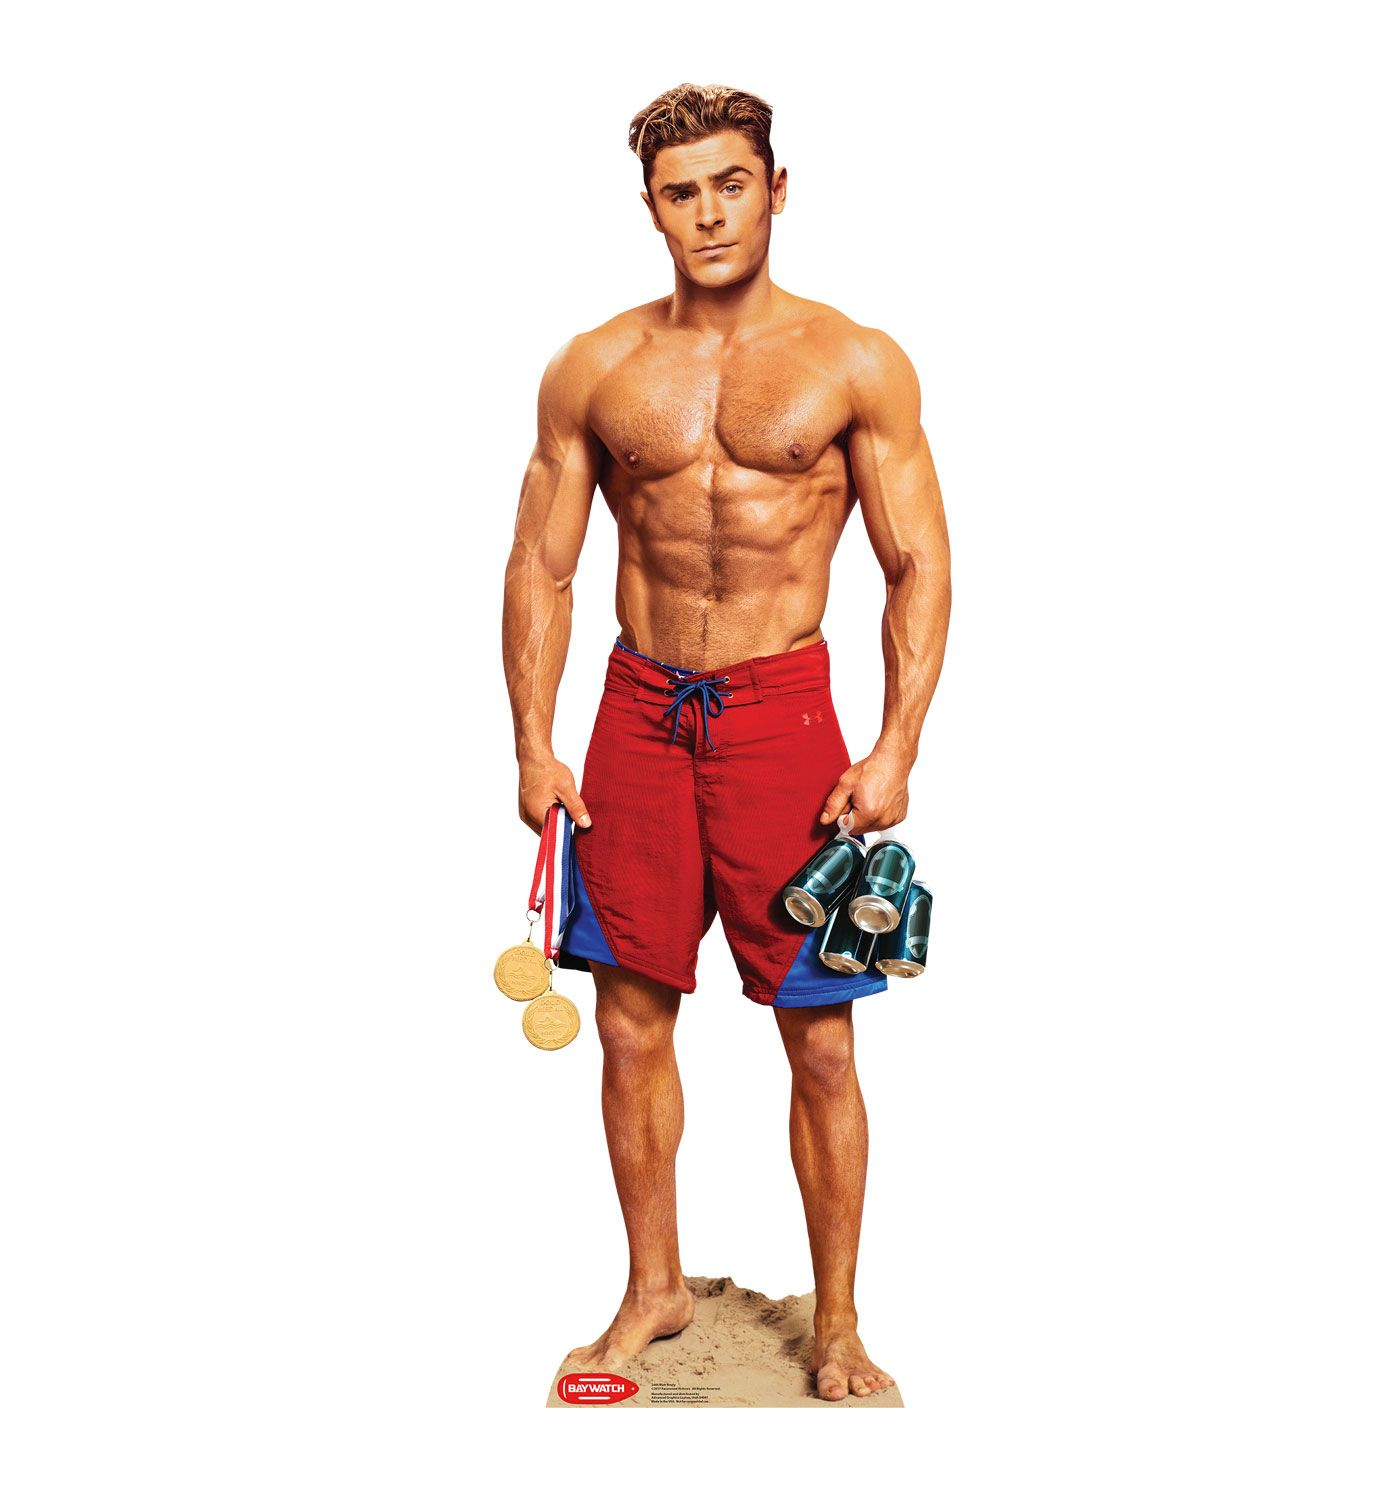 517a1fa76912 Matt Brody - Zac Efron (Baywatch Movie). Lifeguards make great eye candy  when they aren t busy running in slow motion to save drowning swimmers.